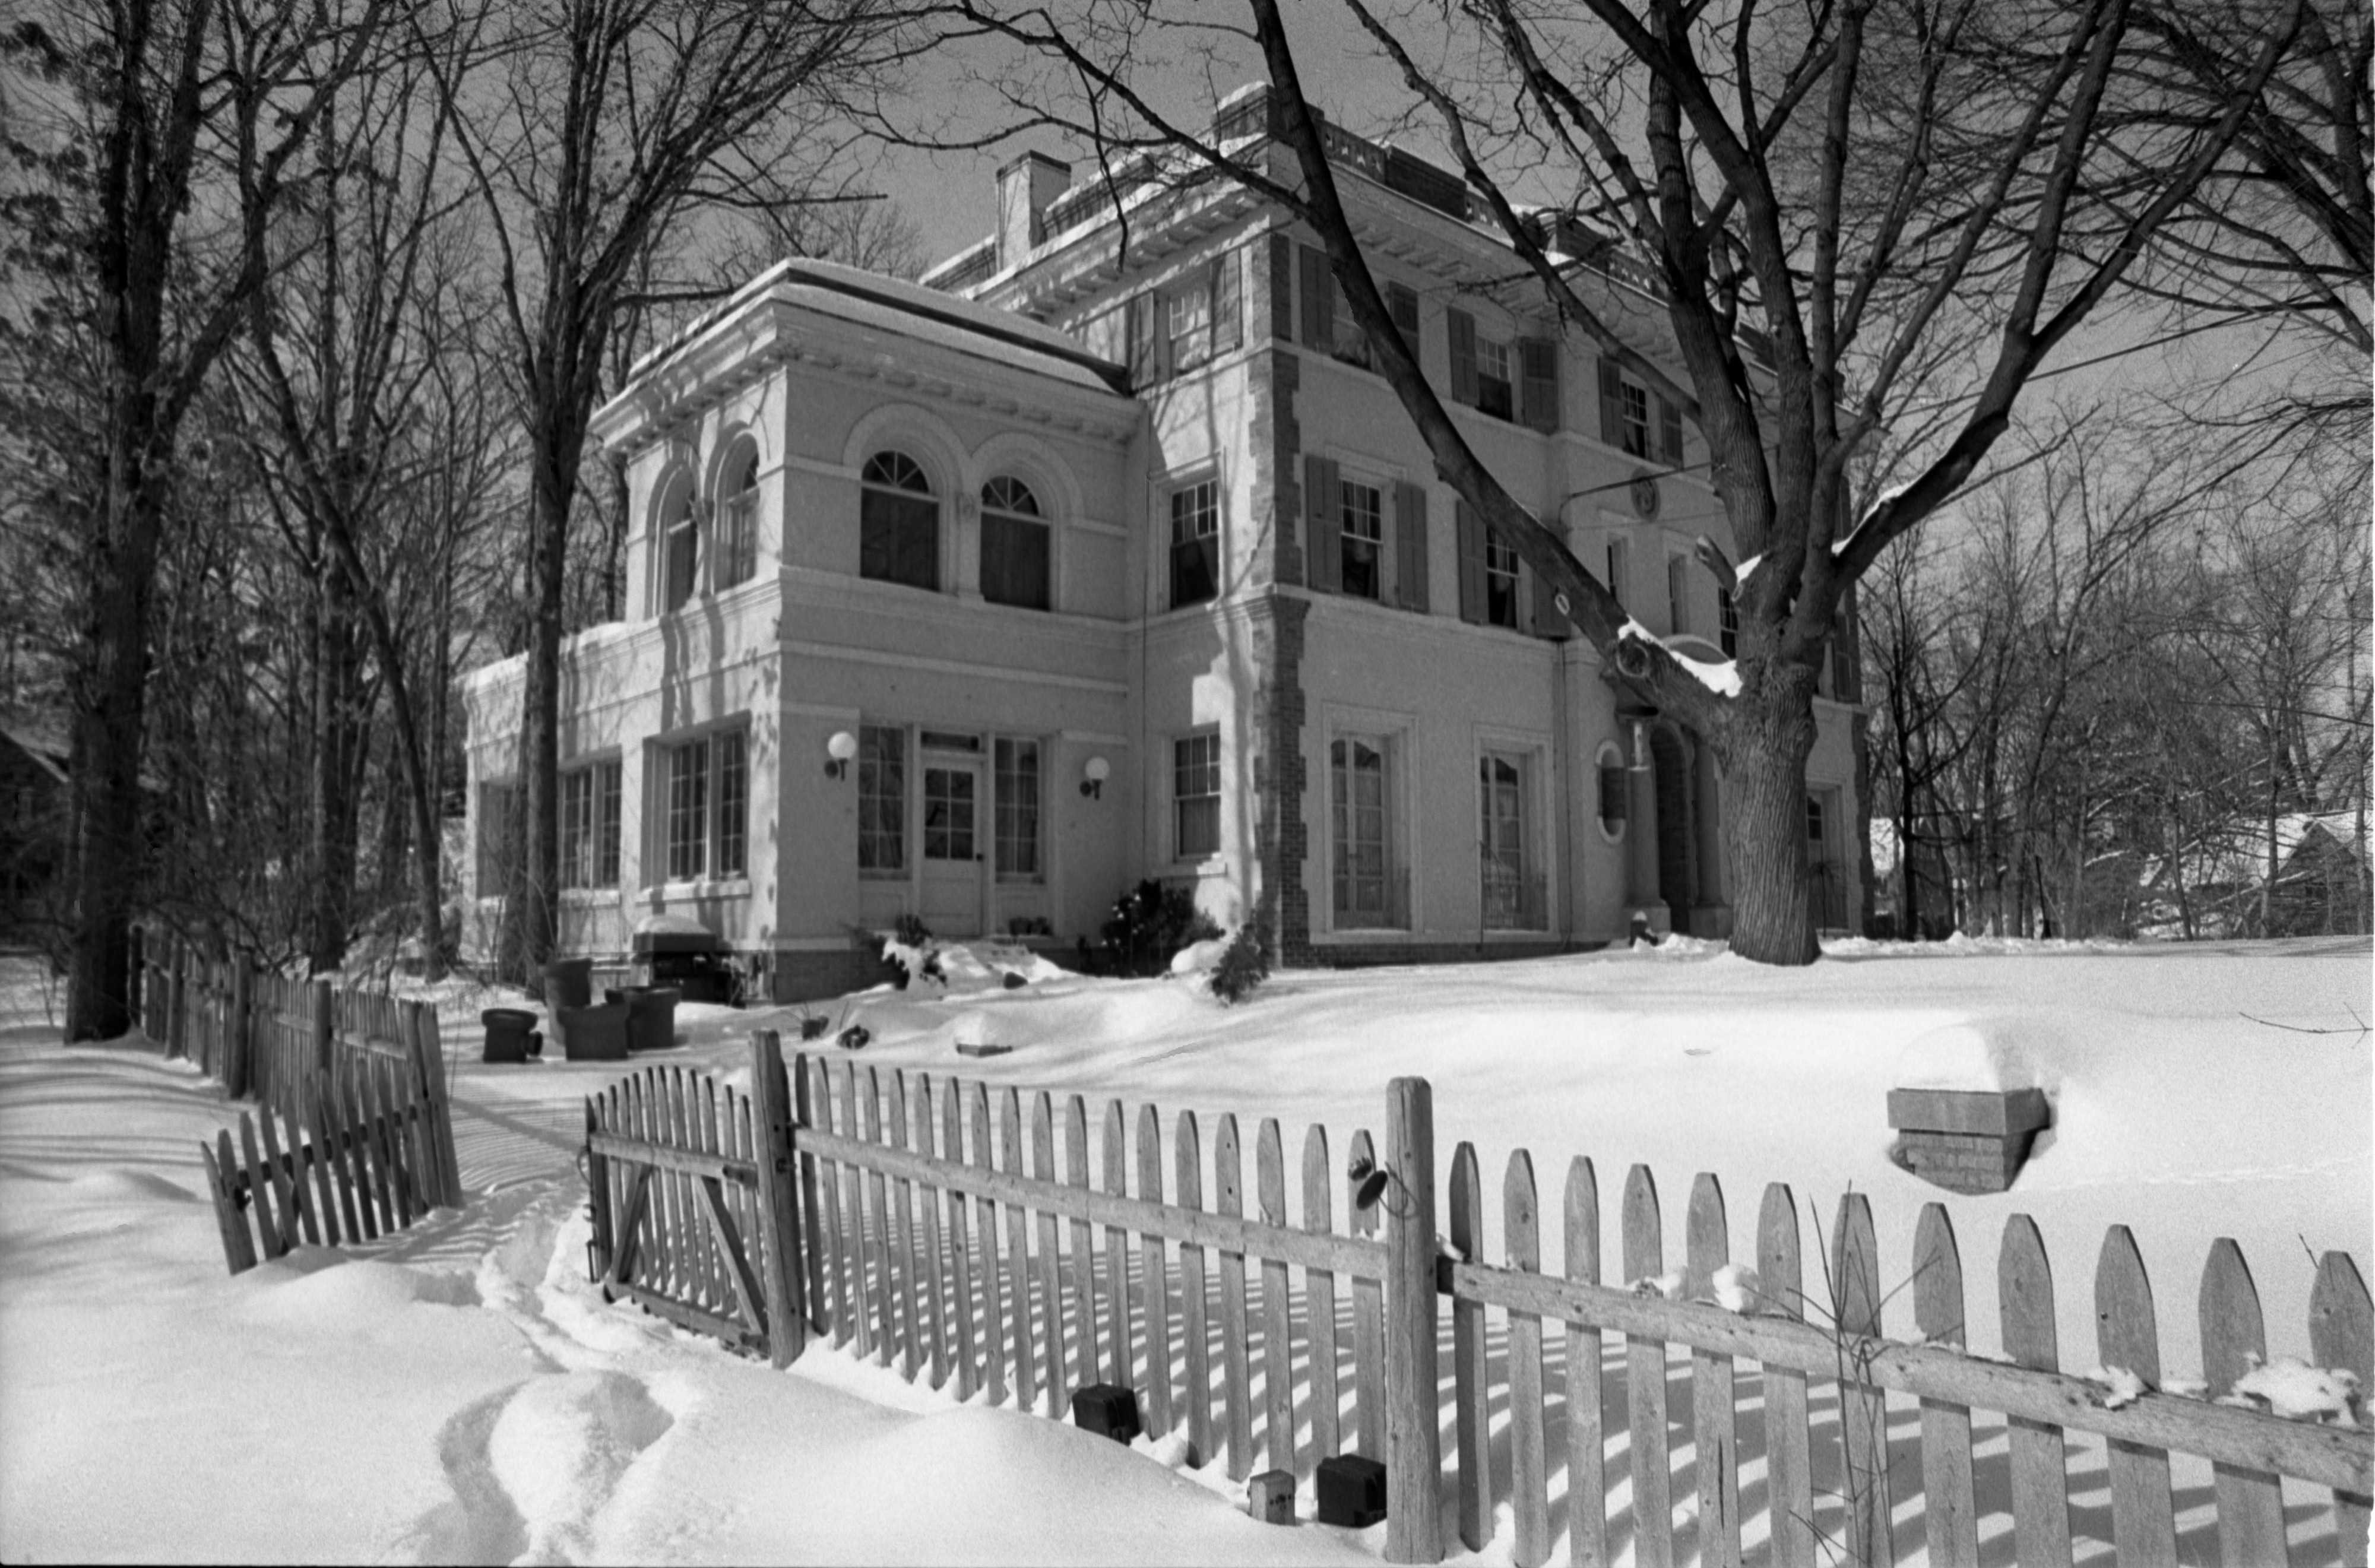 Exterior Of The Hermitage House, February 15, 1982 image